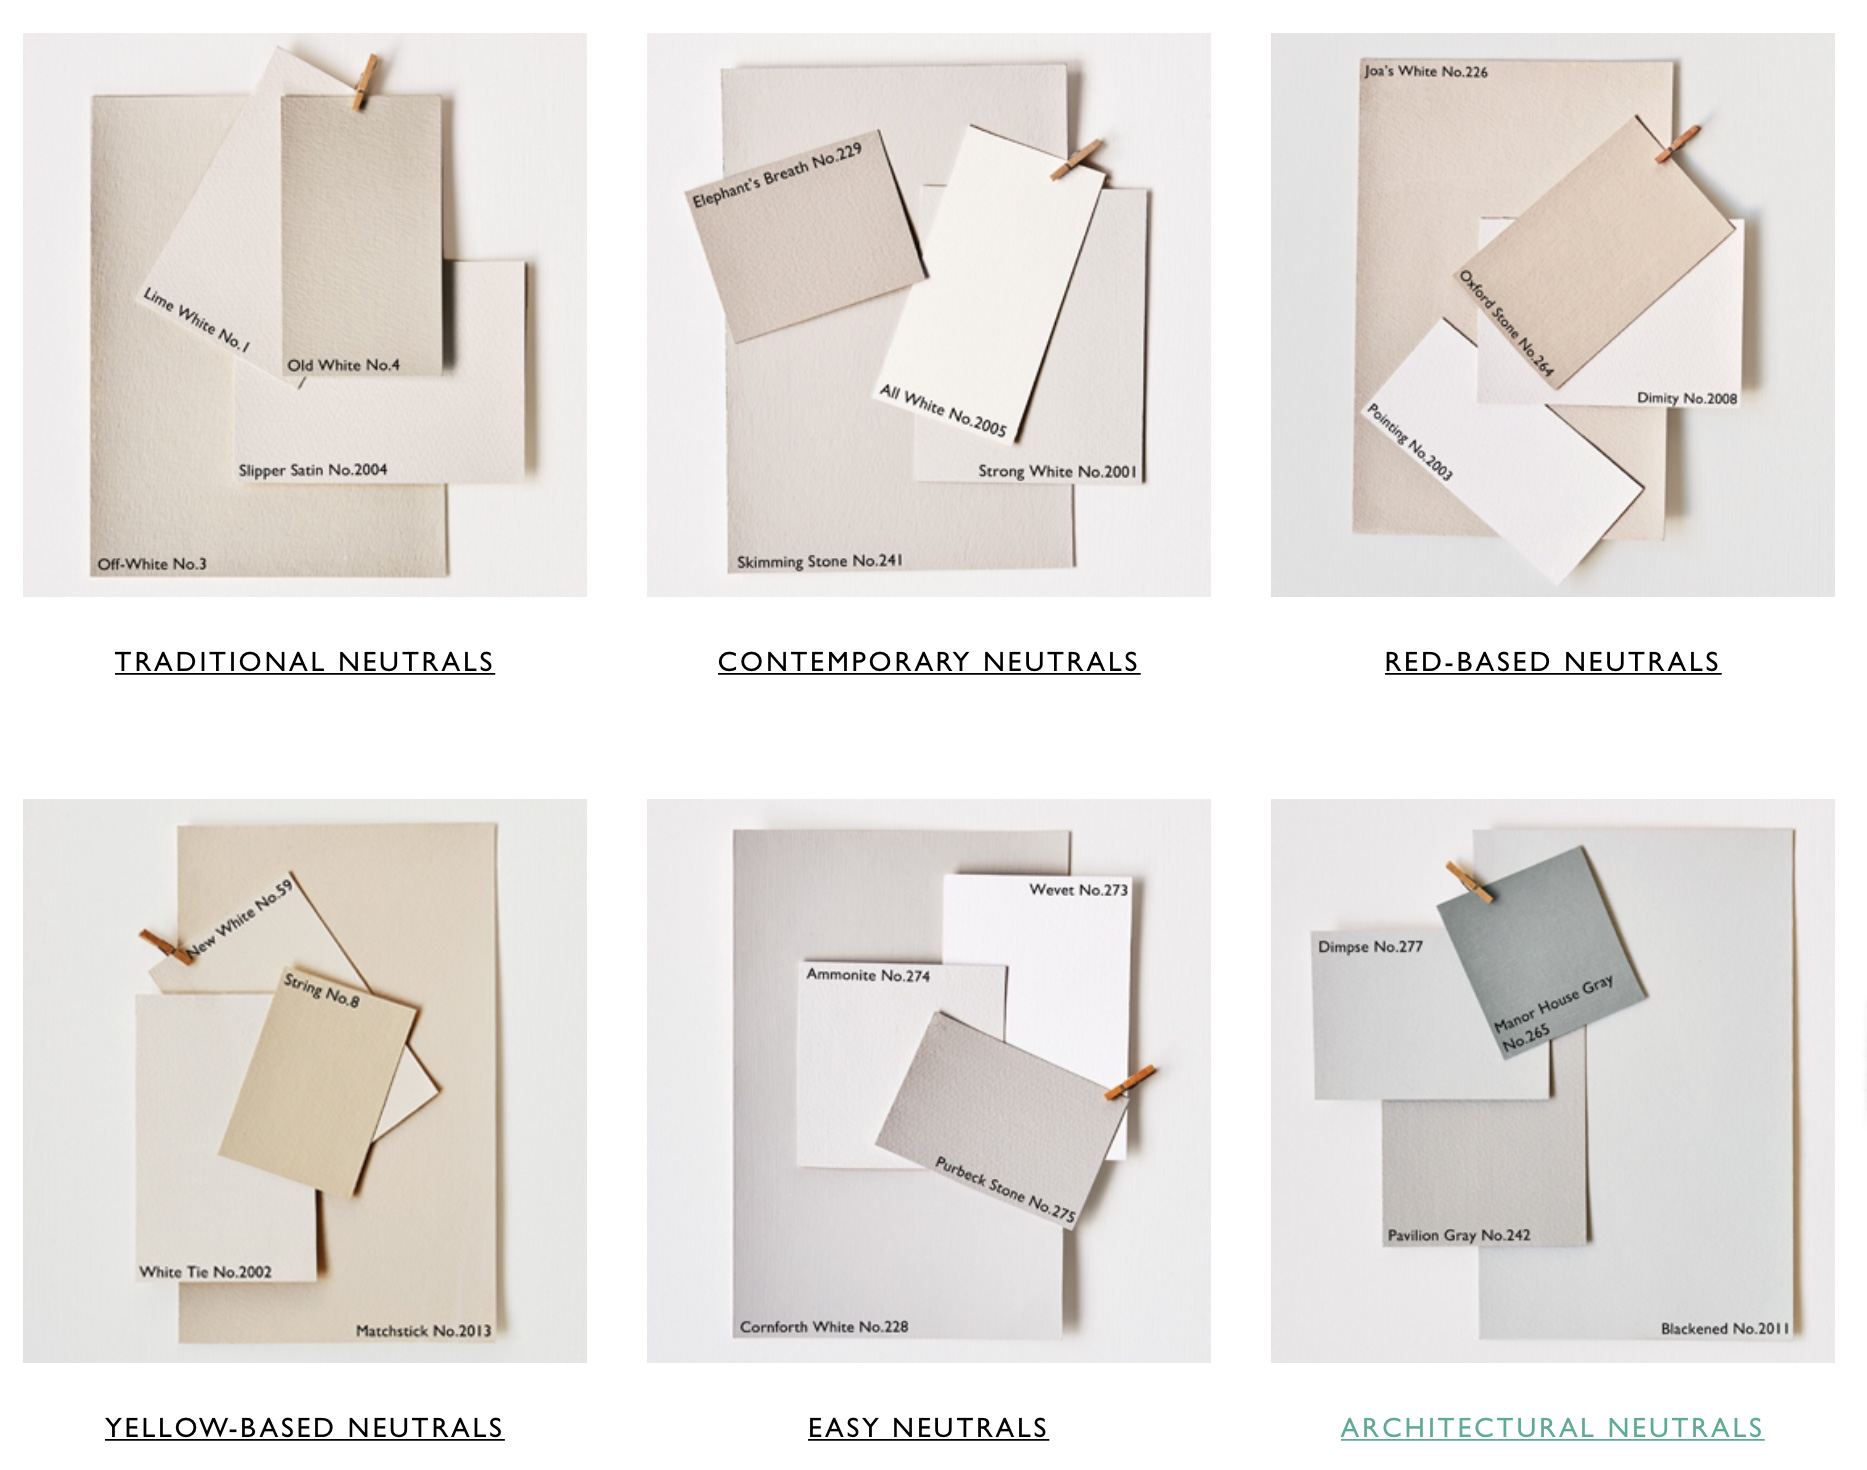 A selection of 'Grieges' from Farrow & Ball | Image from Farrow & Ball used under the Fair Use Doctrine.